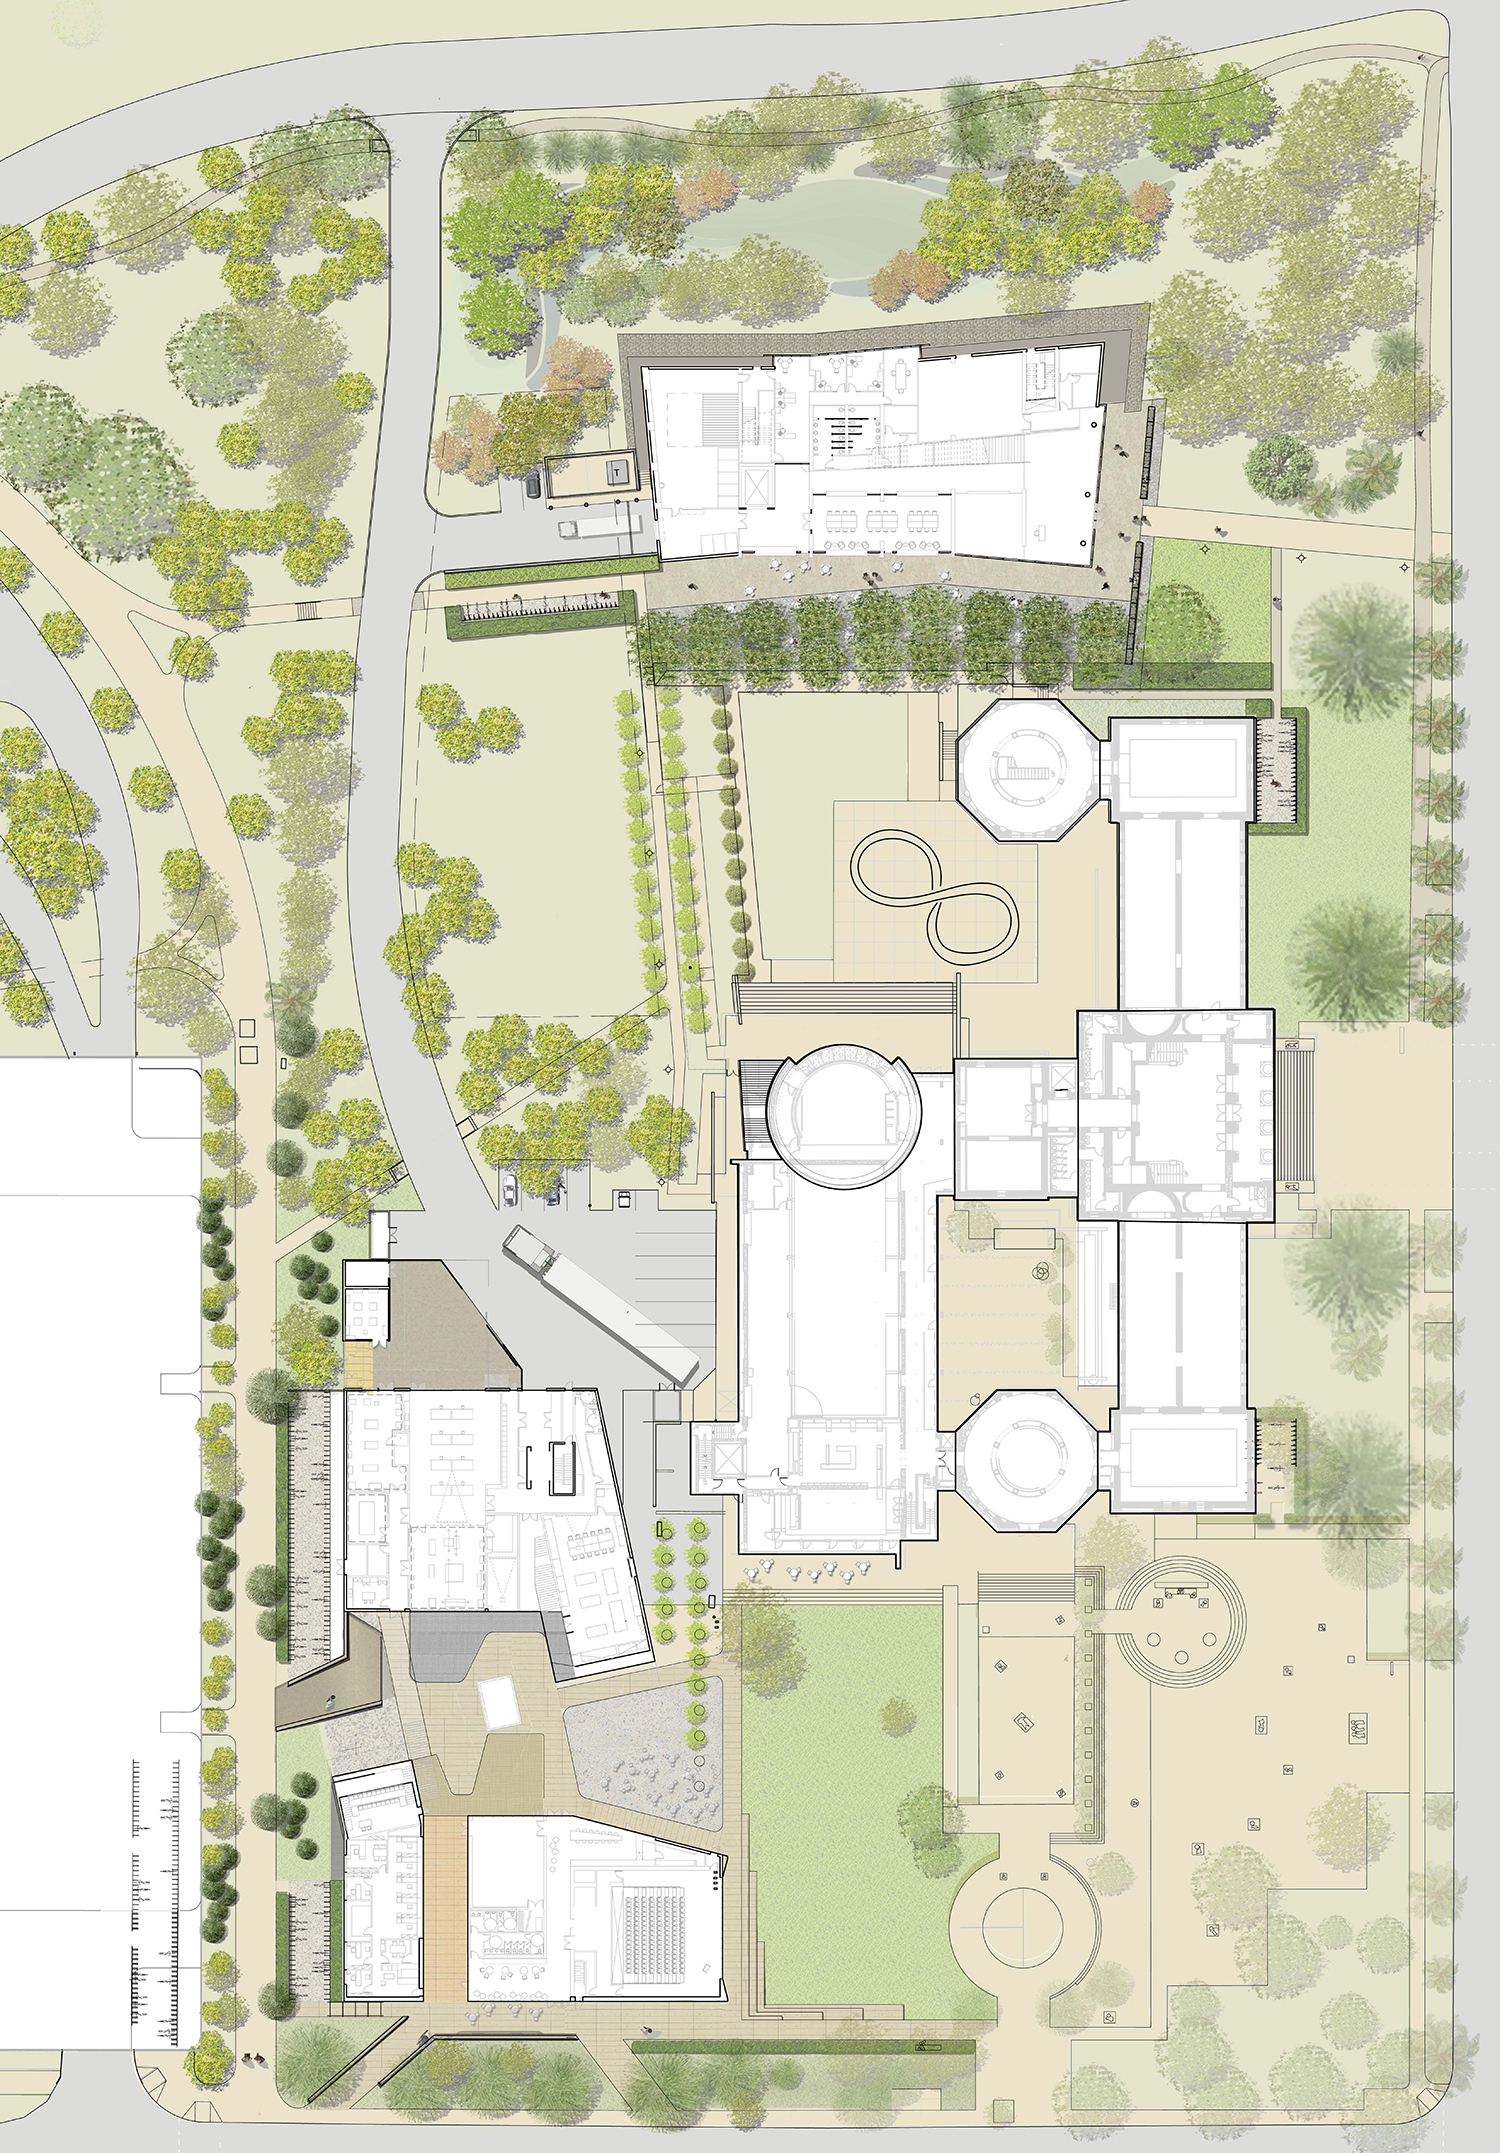 O|CB's Arts Precinct Master Plan for Stanford University showing the Anderson to the north